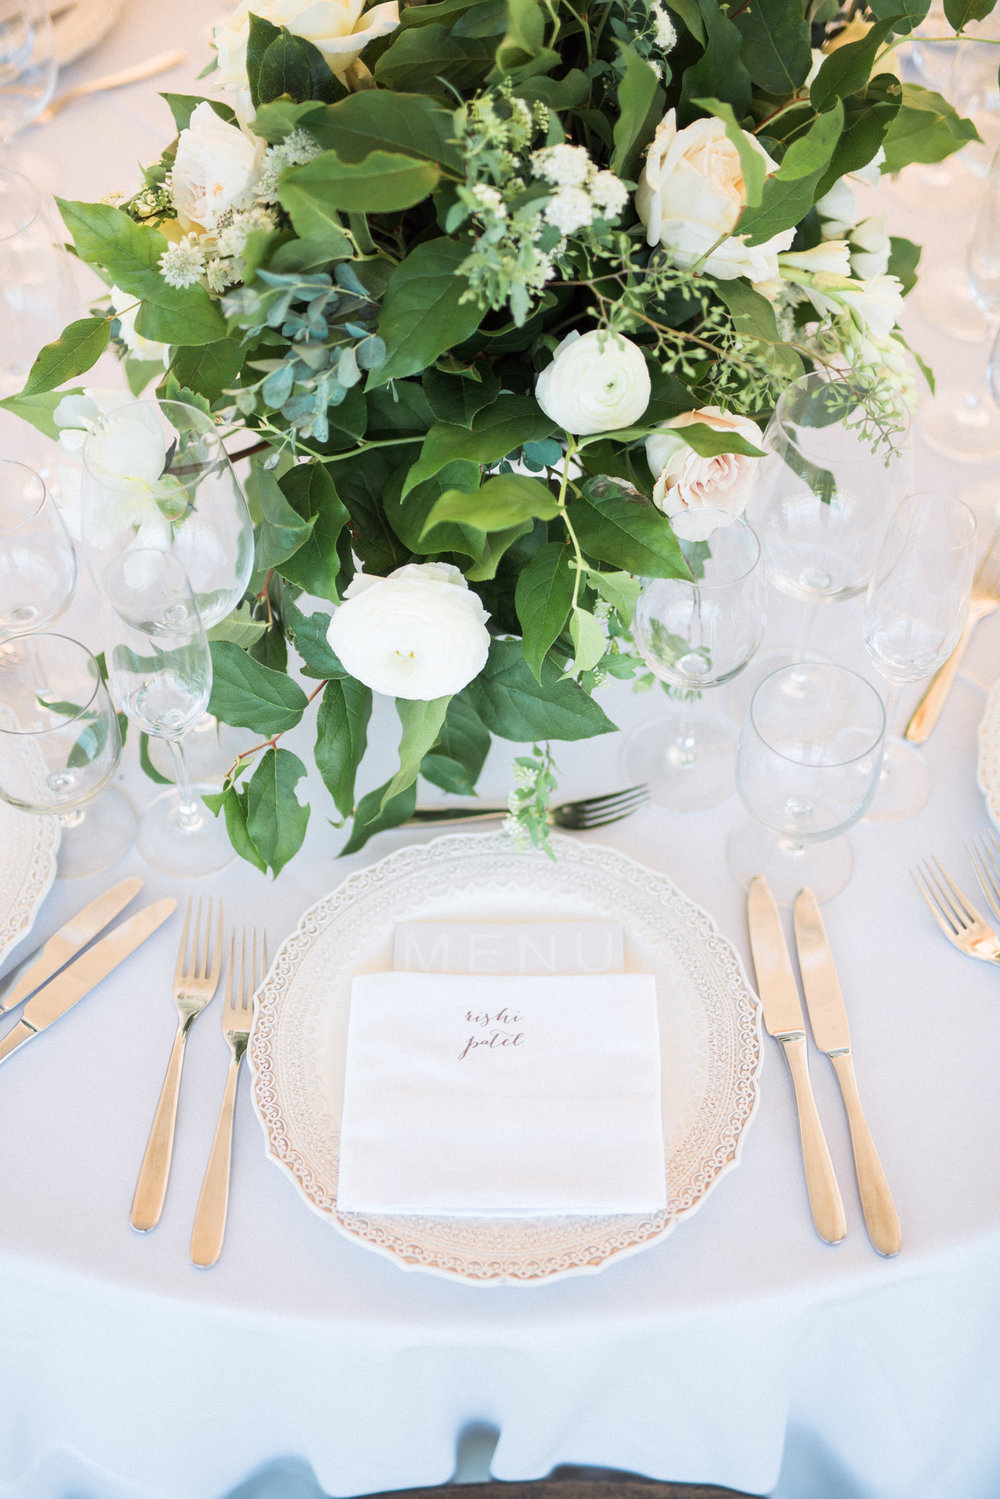 Wedding reception all white and silver place setting